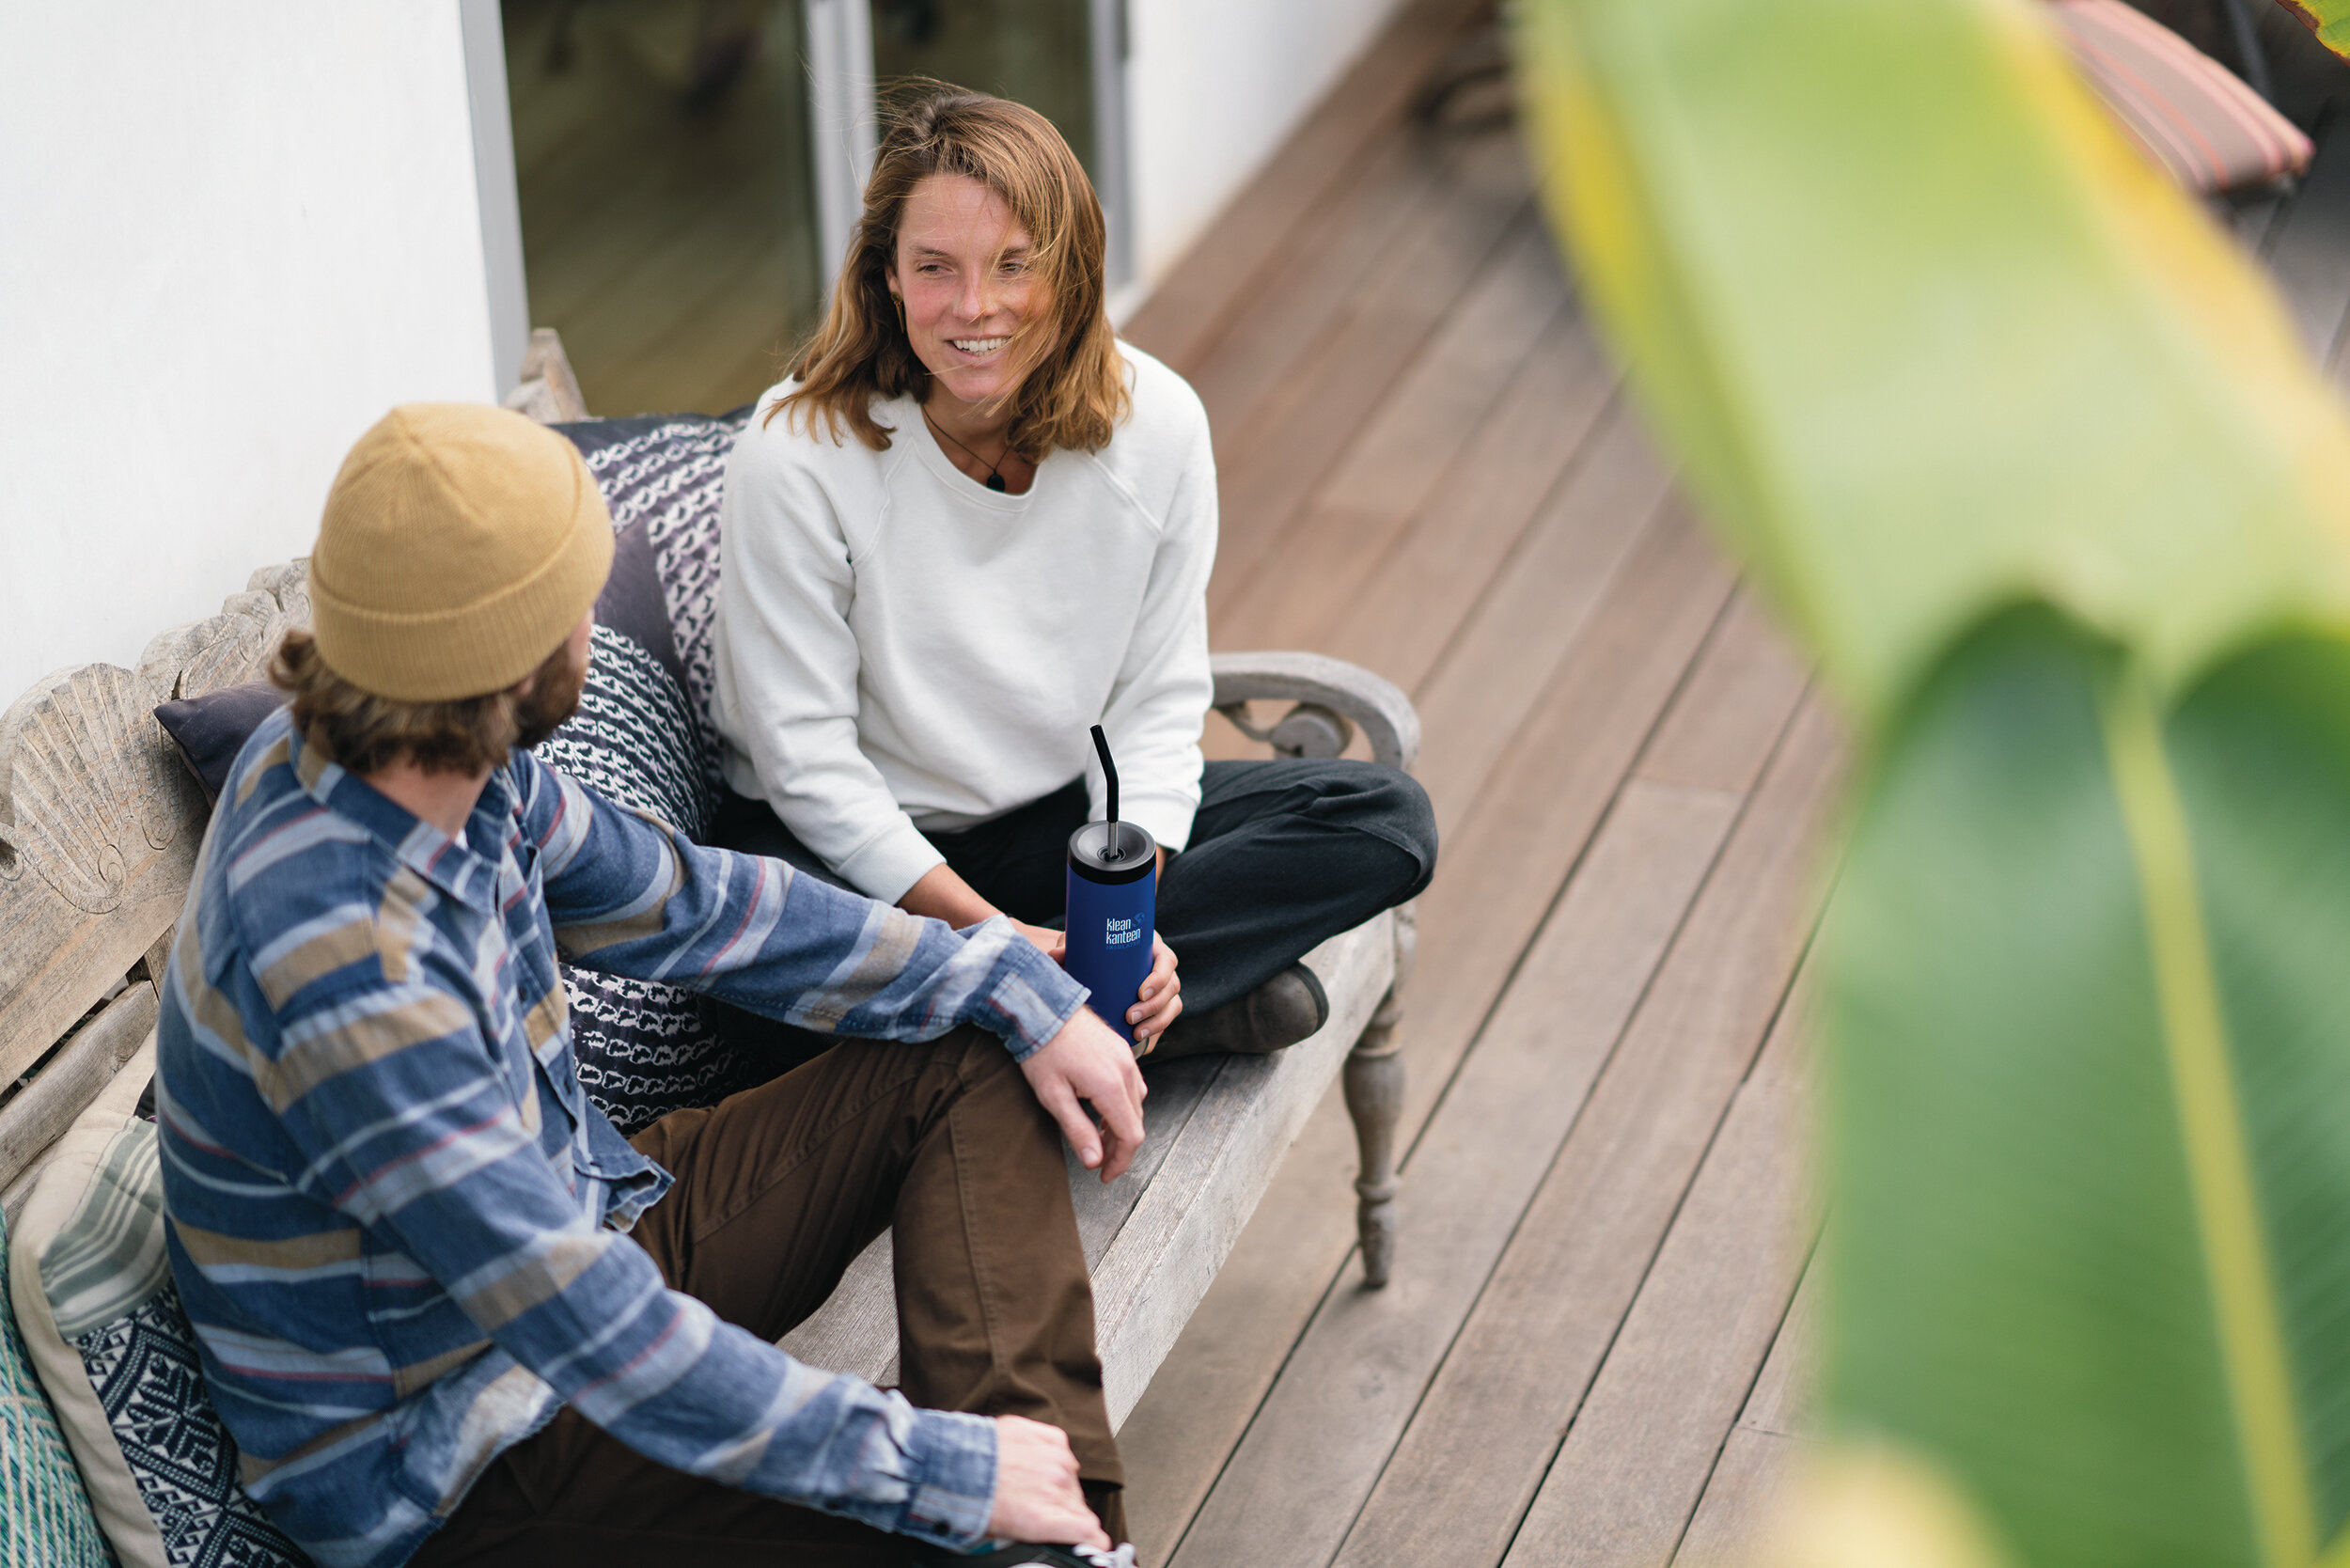 K16TKWPCC-DS-LS-Home-Couple Chatting on Patio.jpg